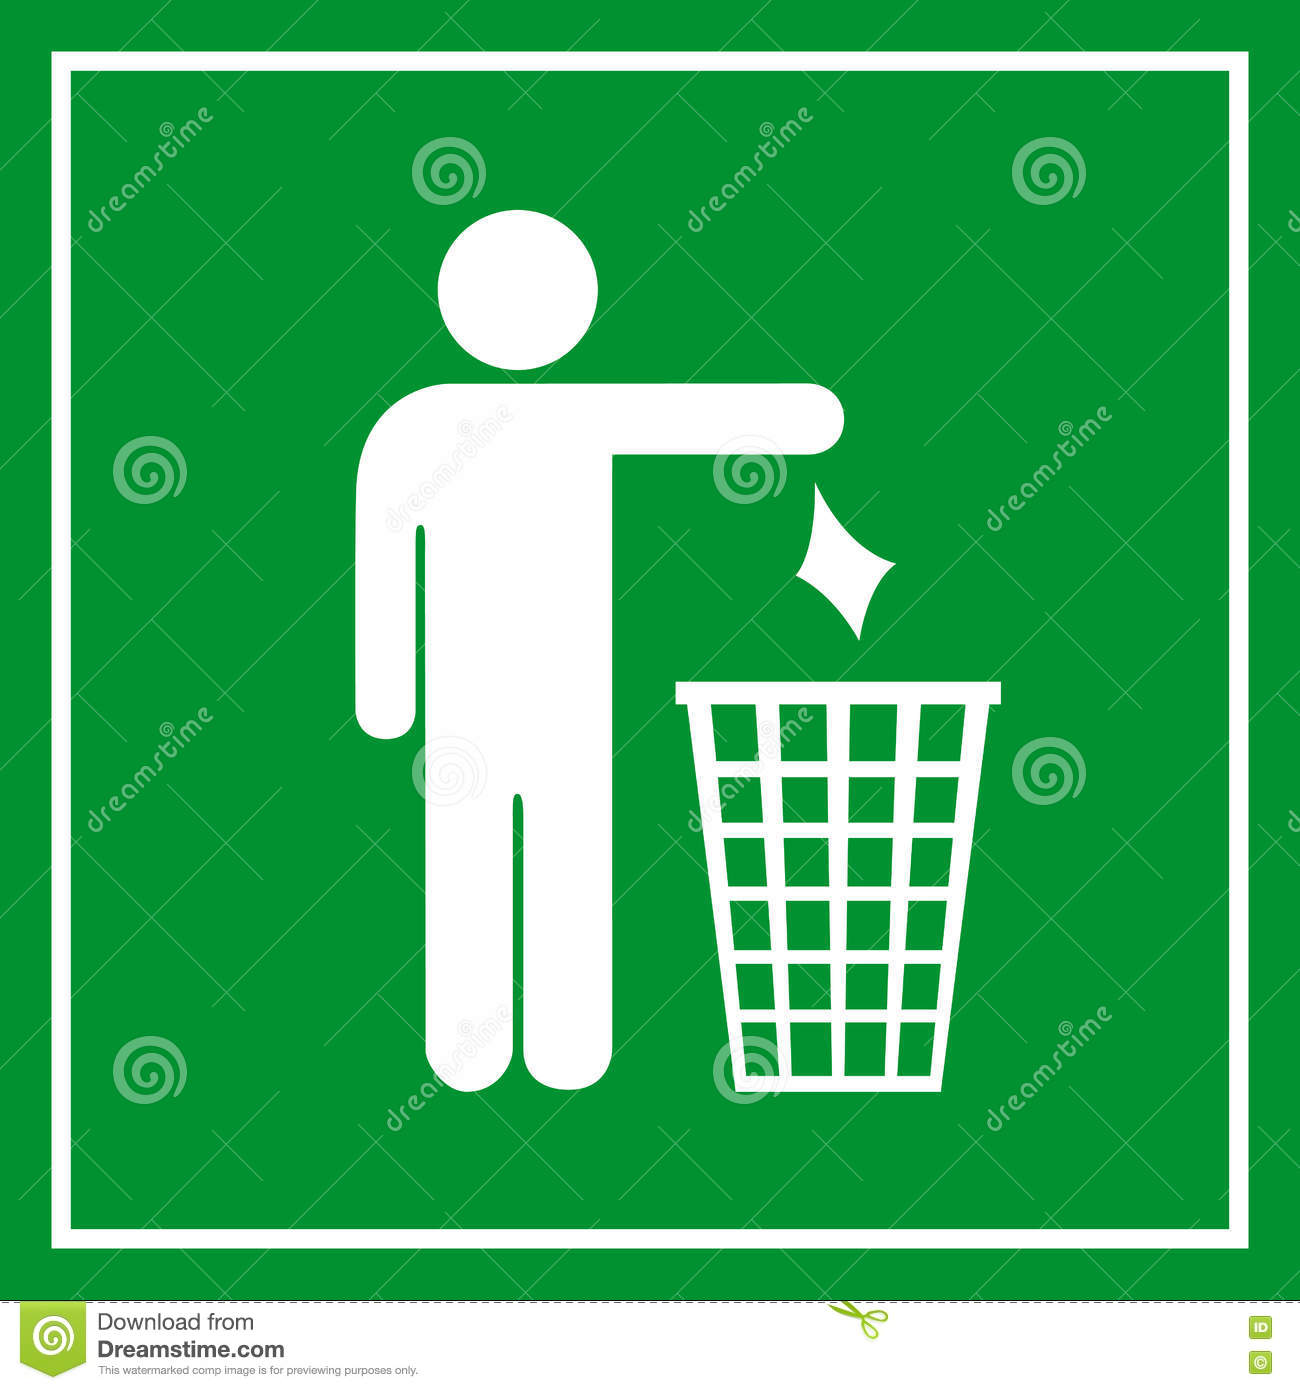 Use A Trash Can No Littering Stock Vector Illustration Of Ecology